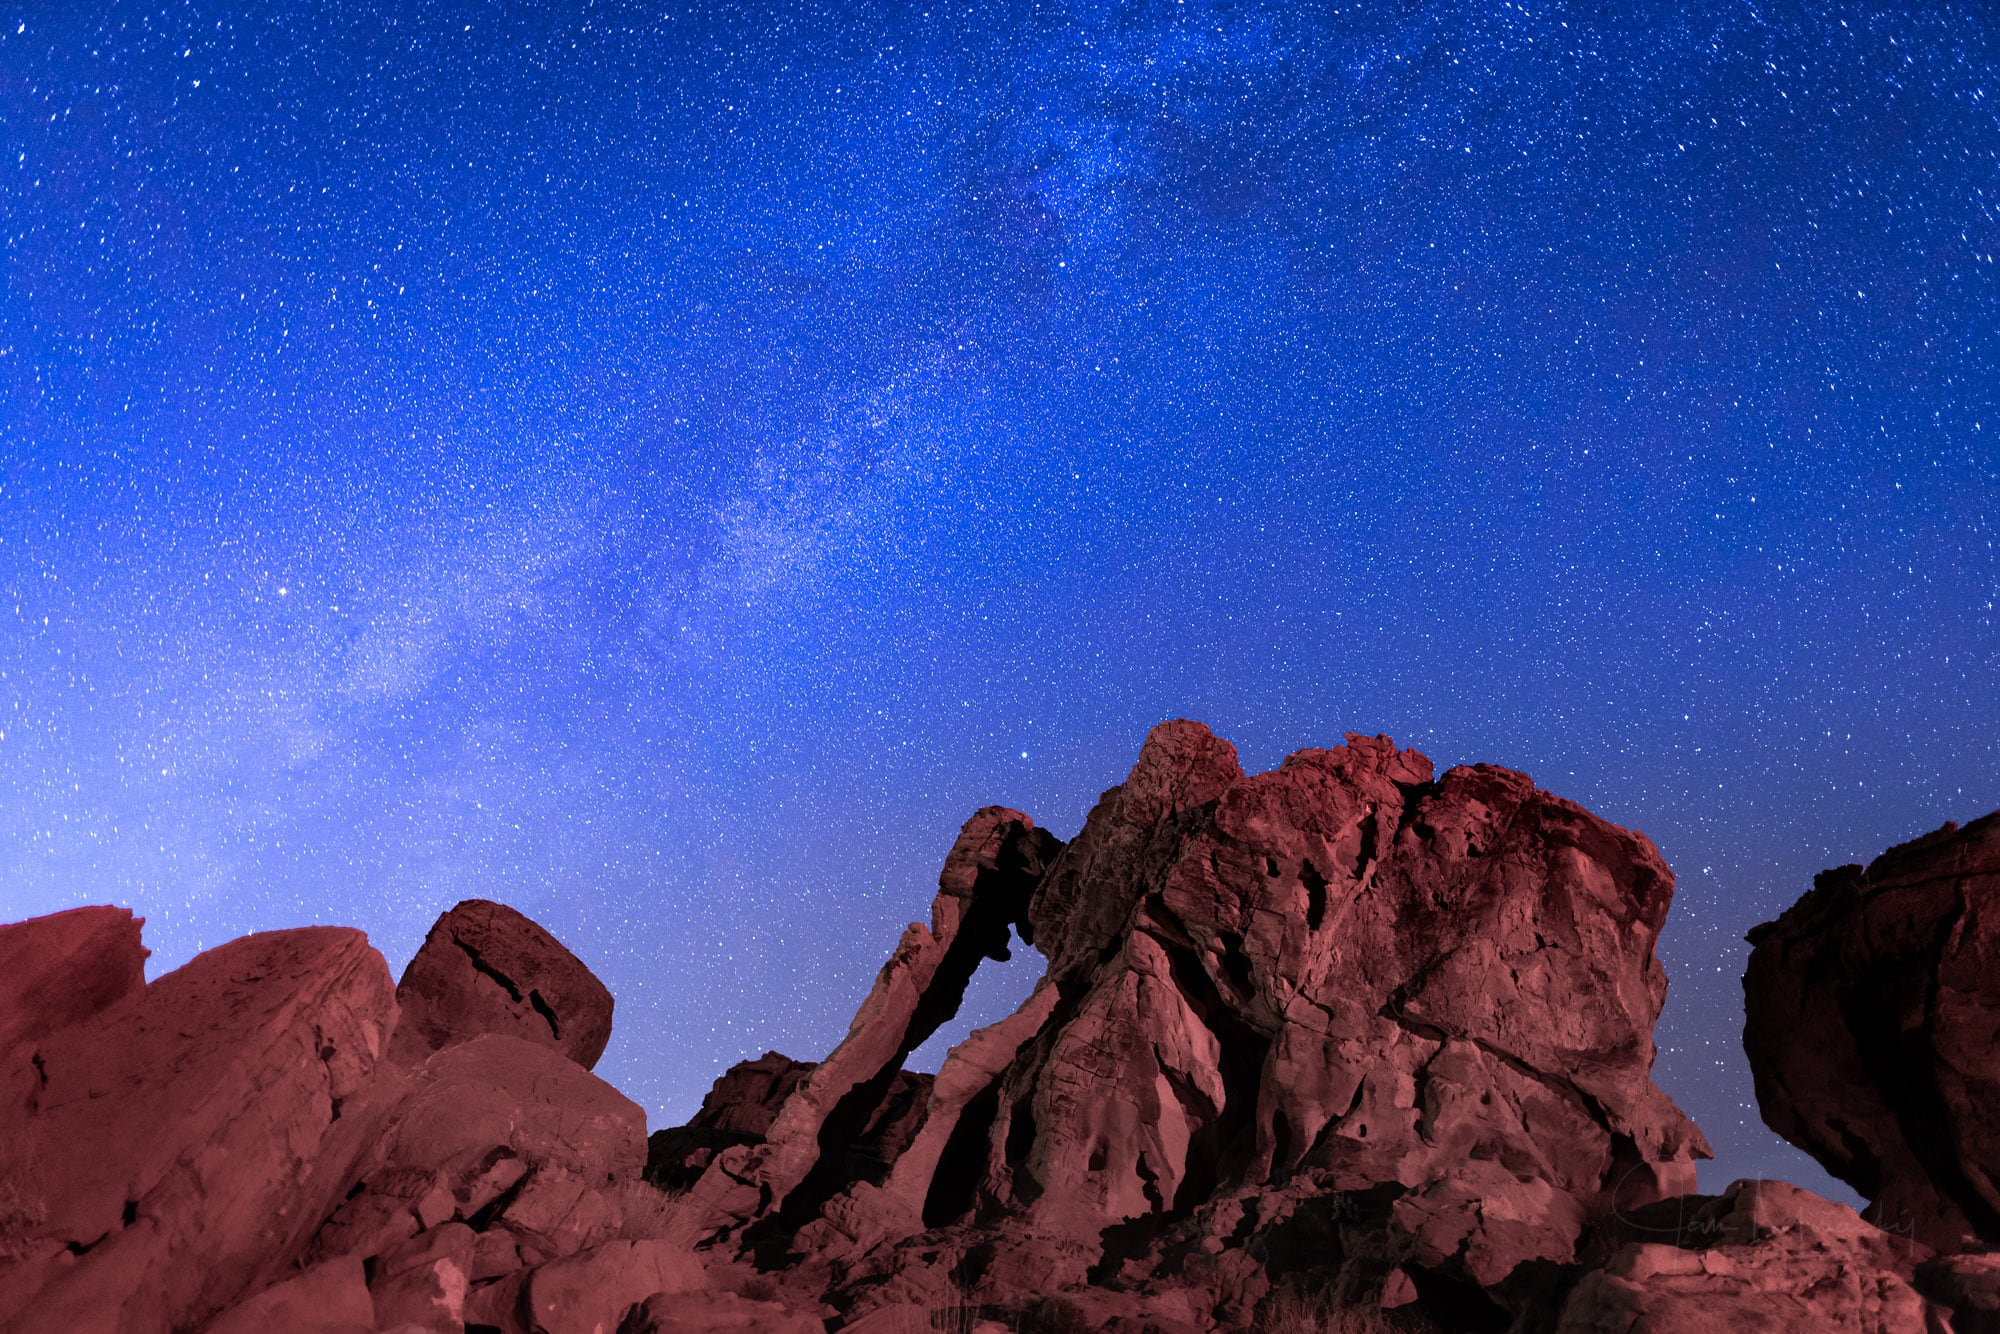 Milky Way above Elephant rock formation, Valley of Fire State Pa